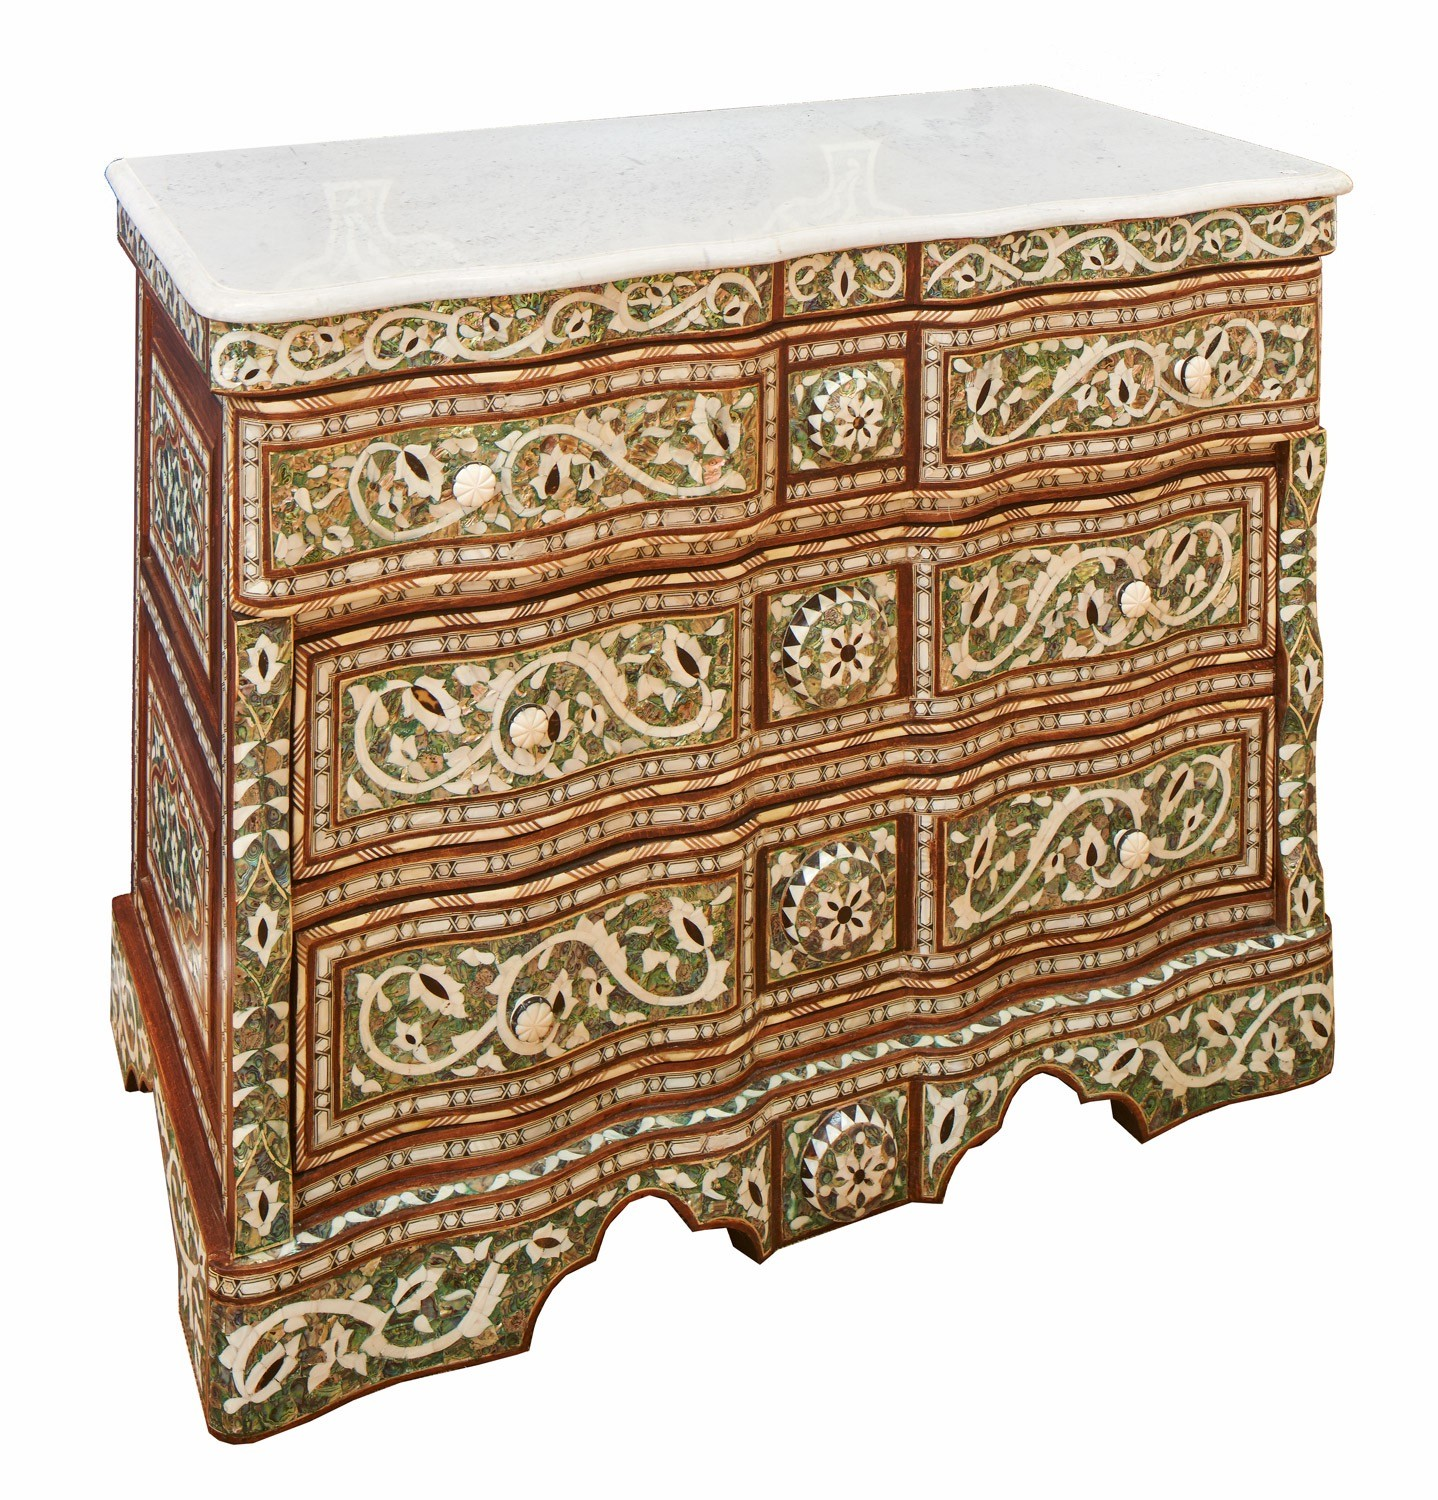 La Mamounia Inlay Chest